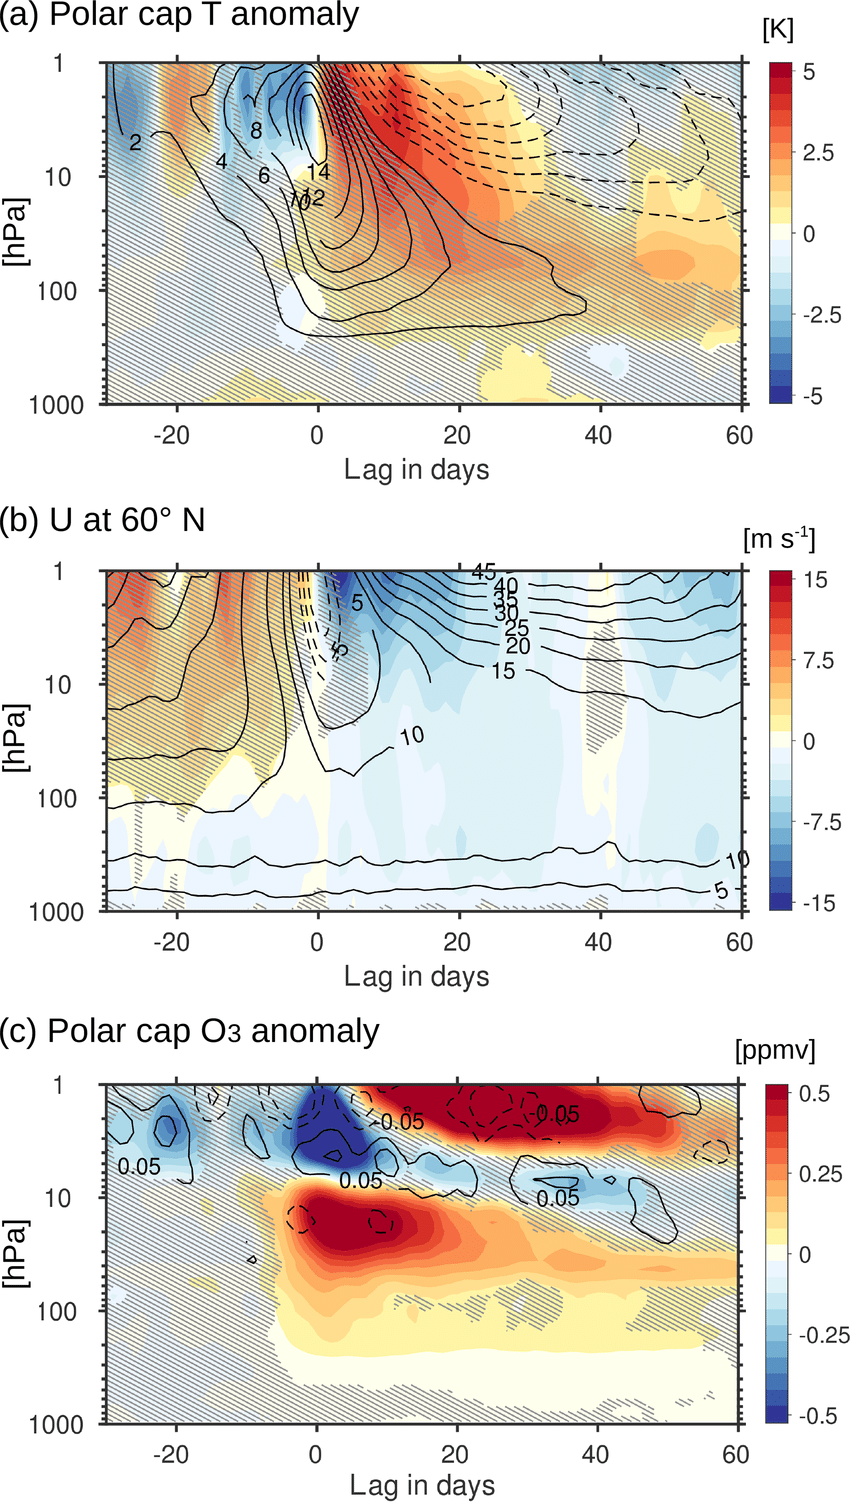 hight resolution of ssw composites for a the polar cap 60 to 90 n